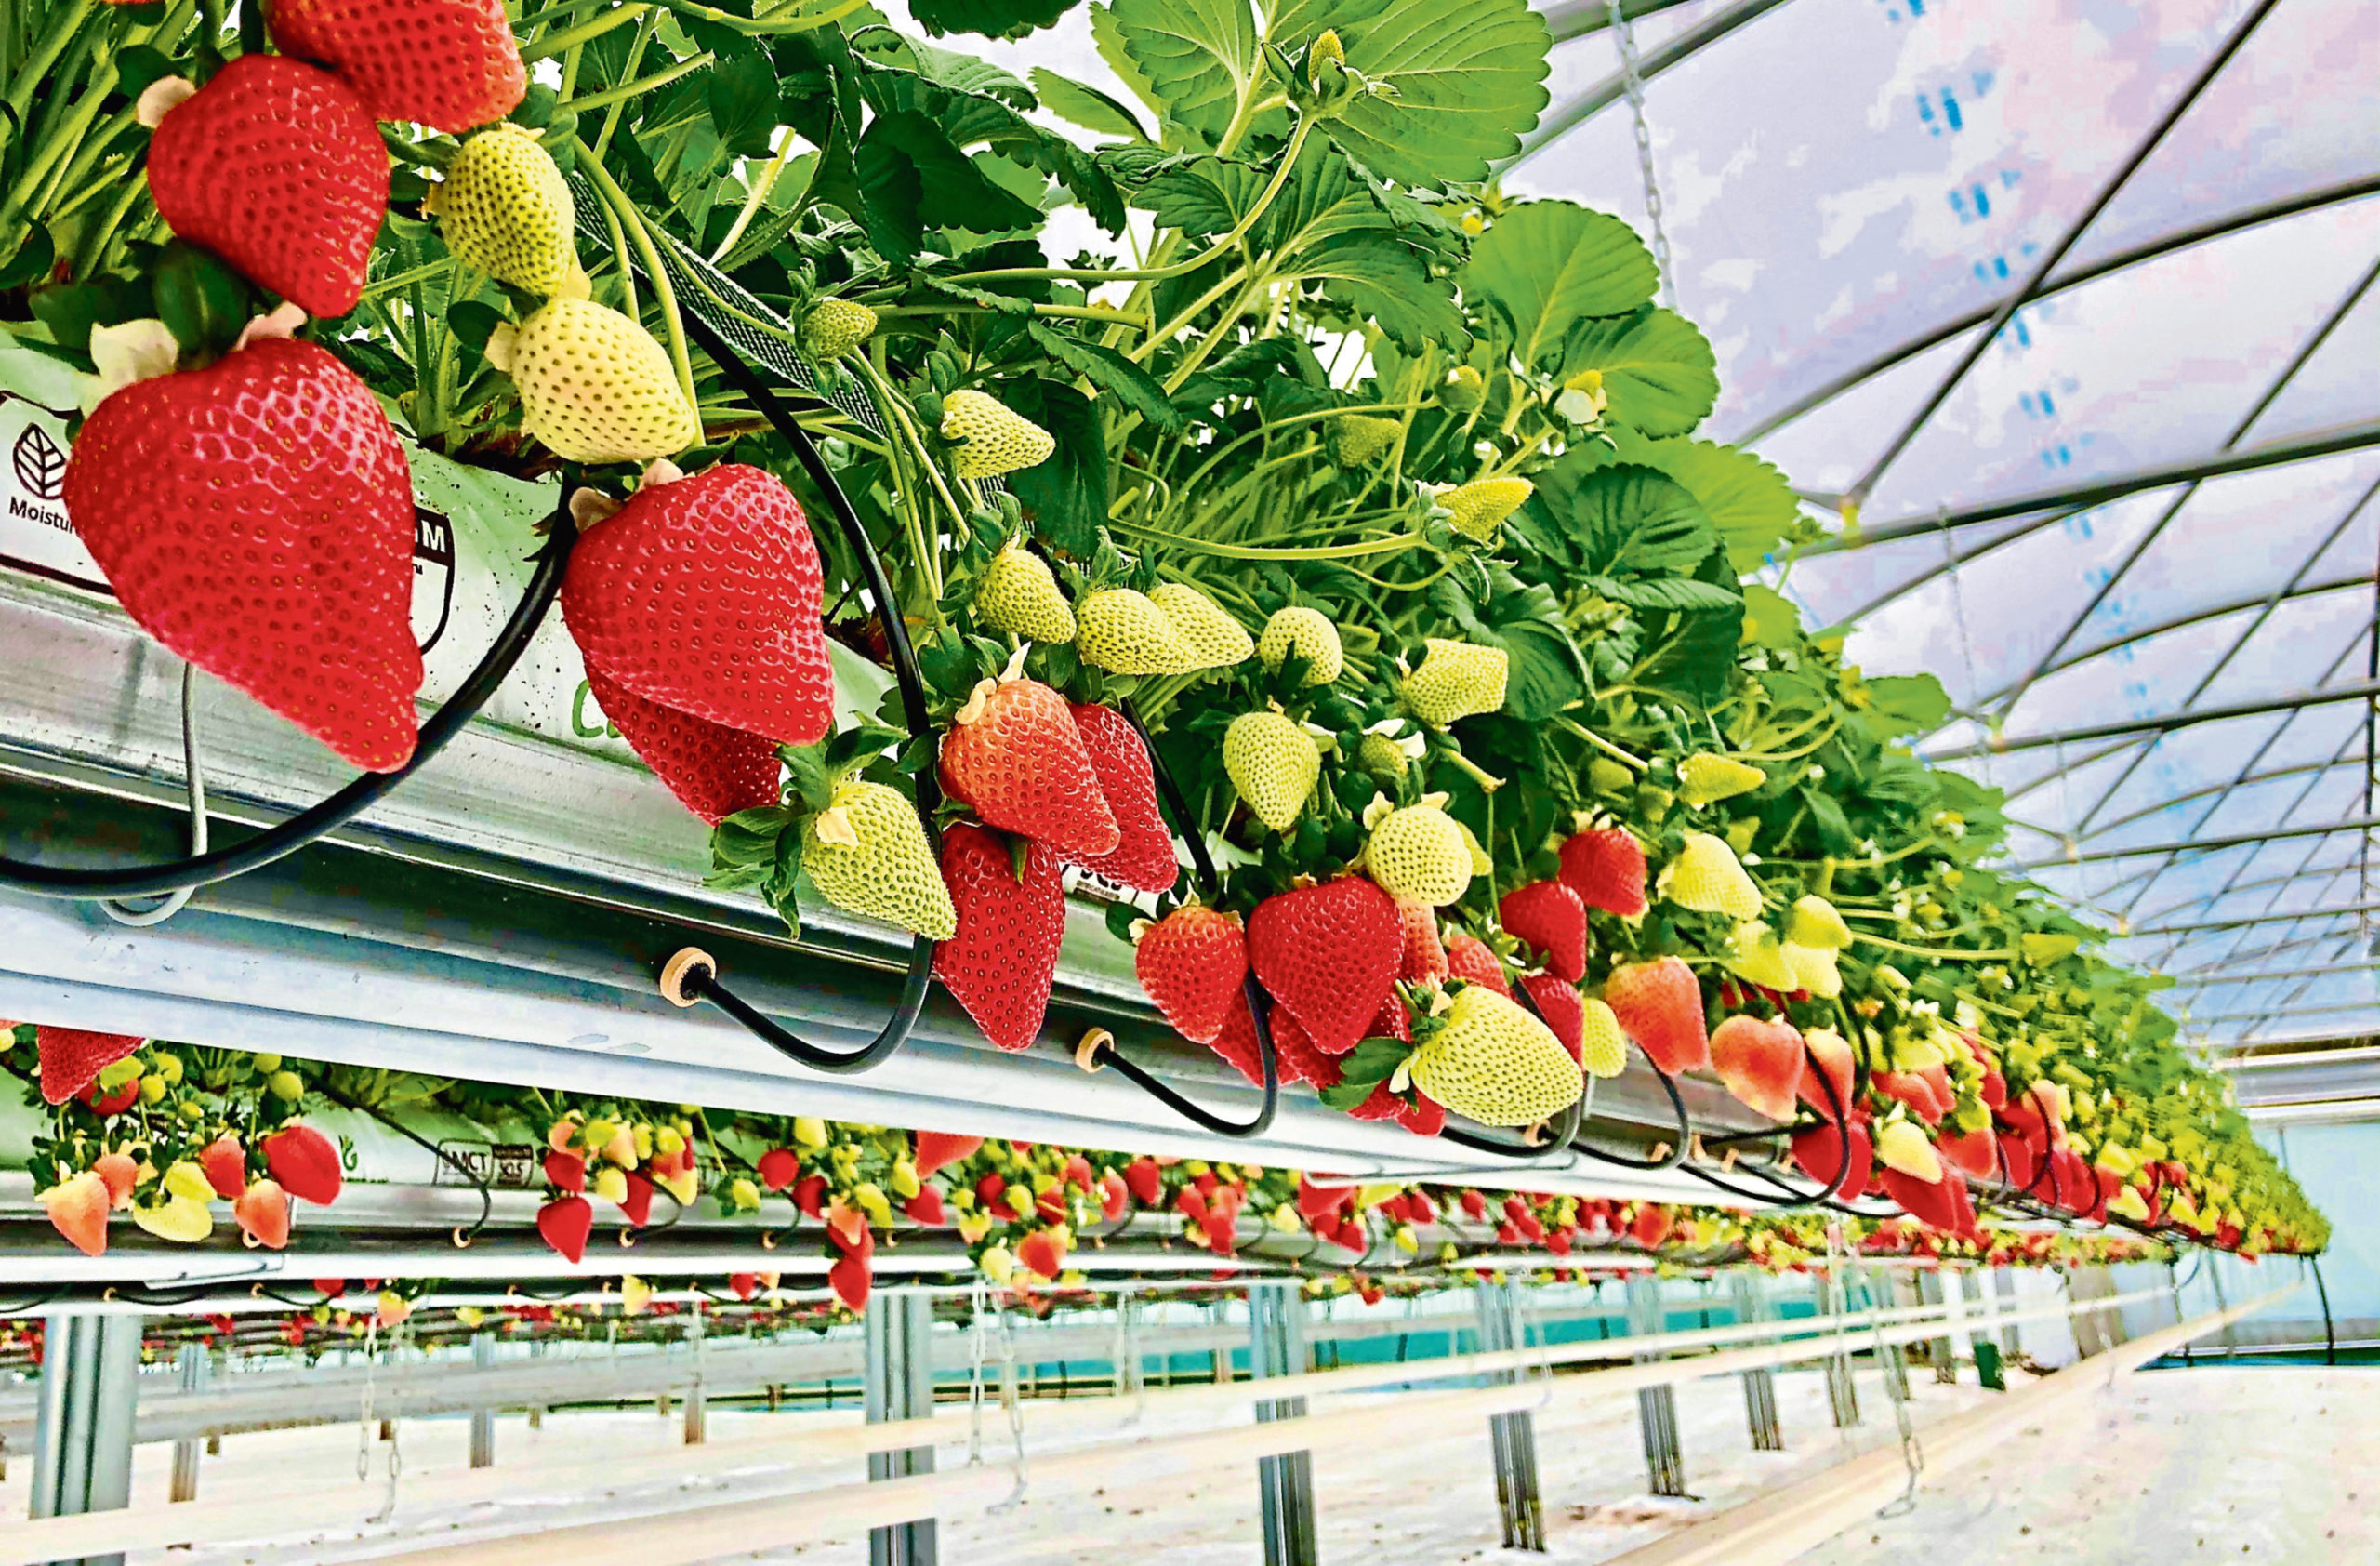 Seahills greenhouses at Auchmithie are packed with premium strawberries which are hard to sell.